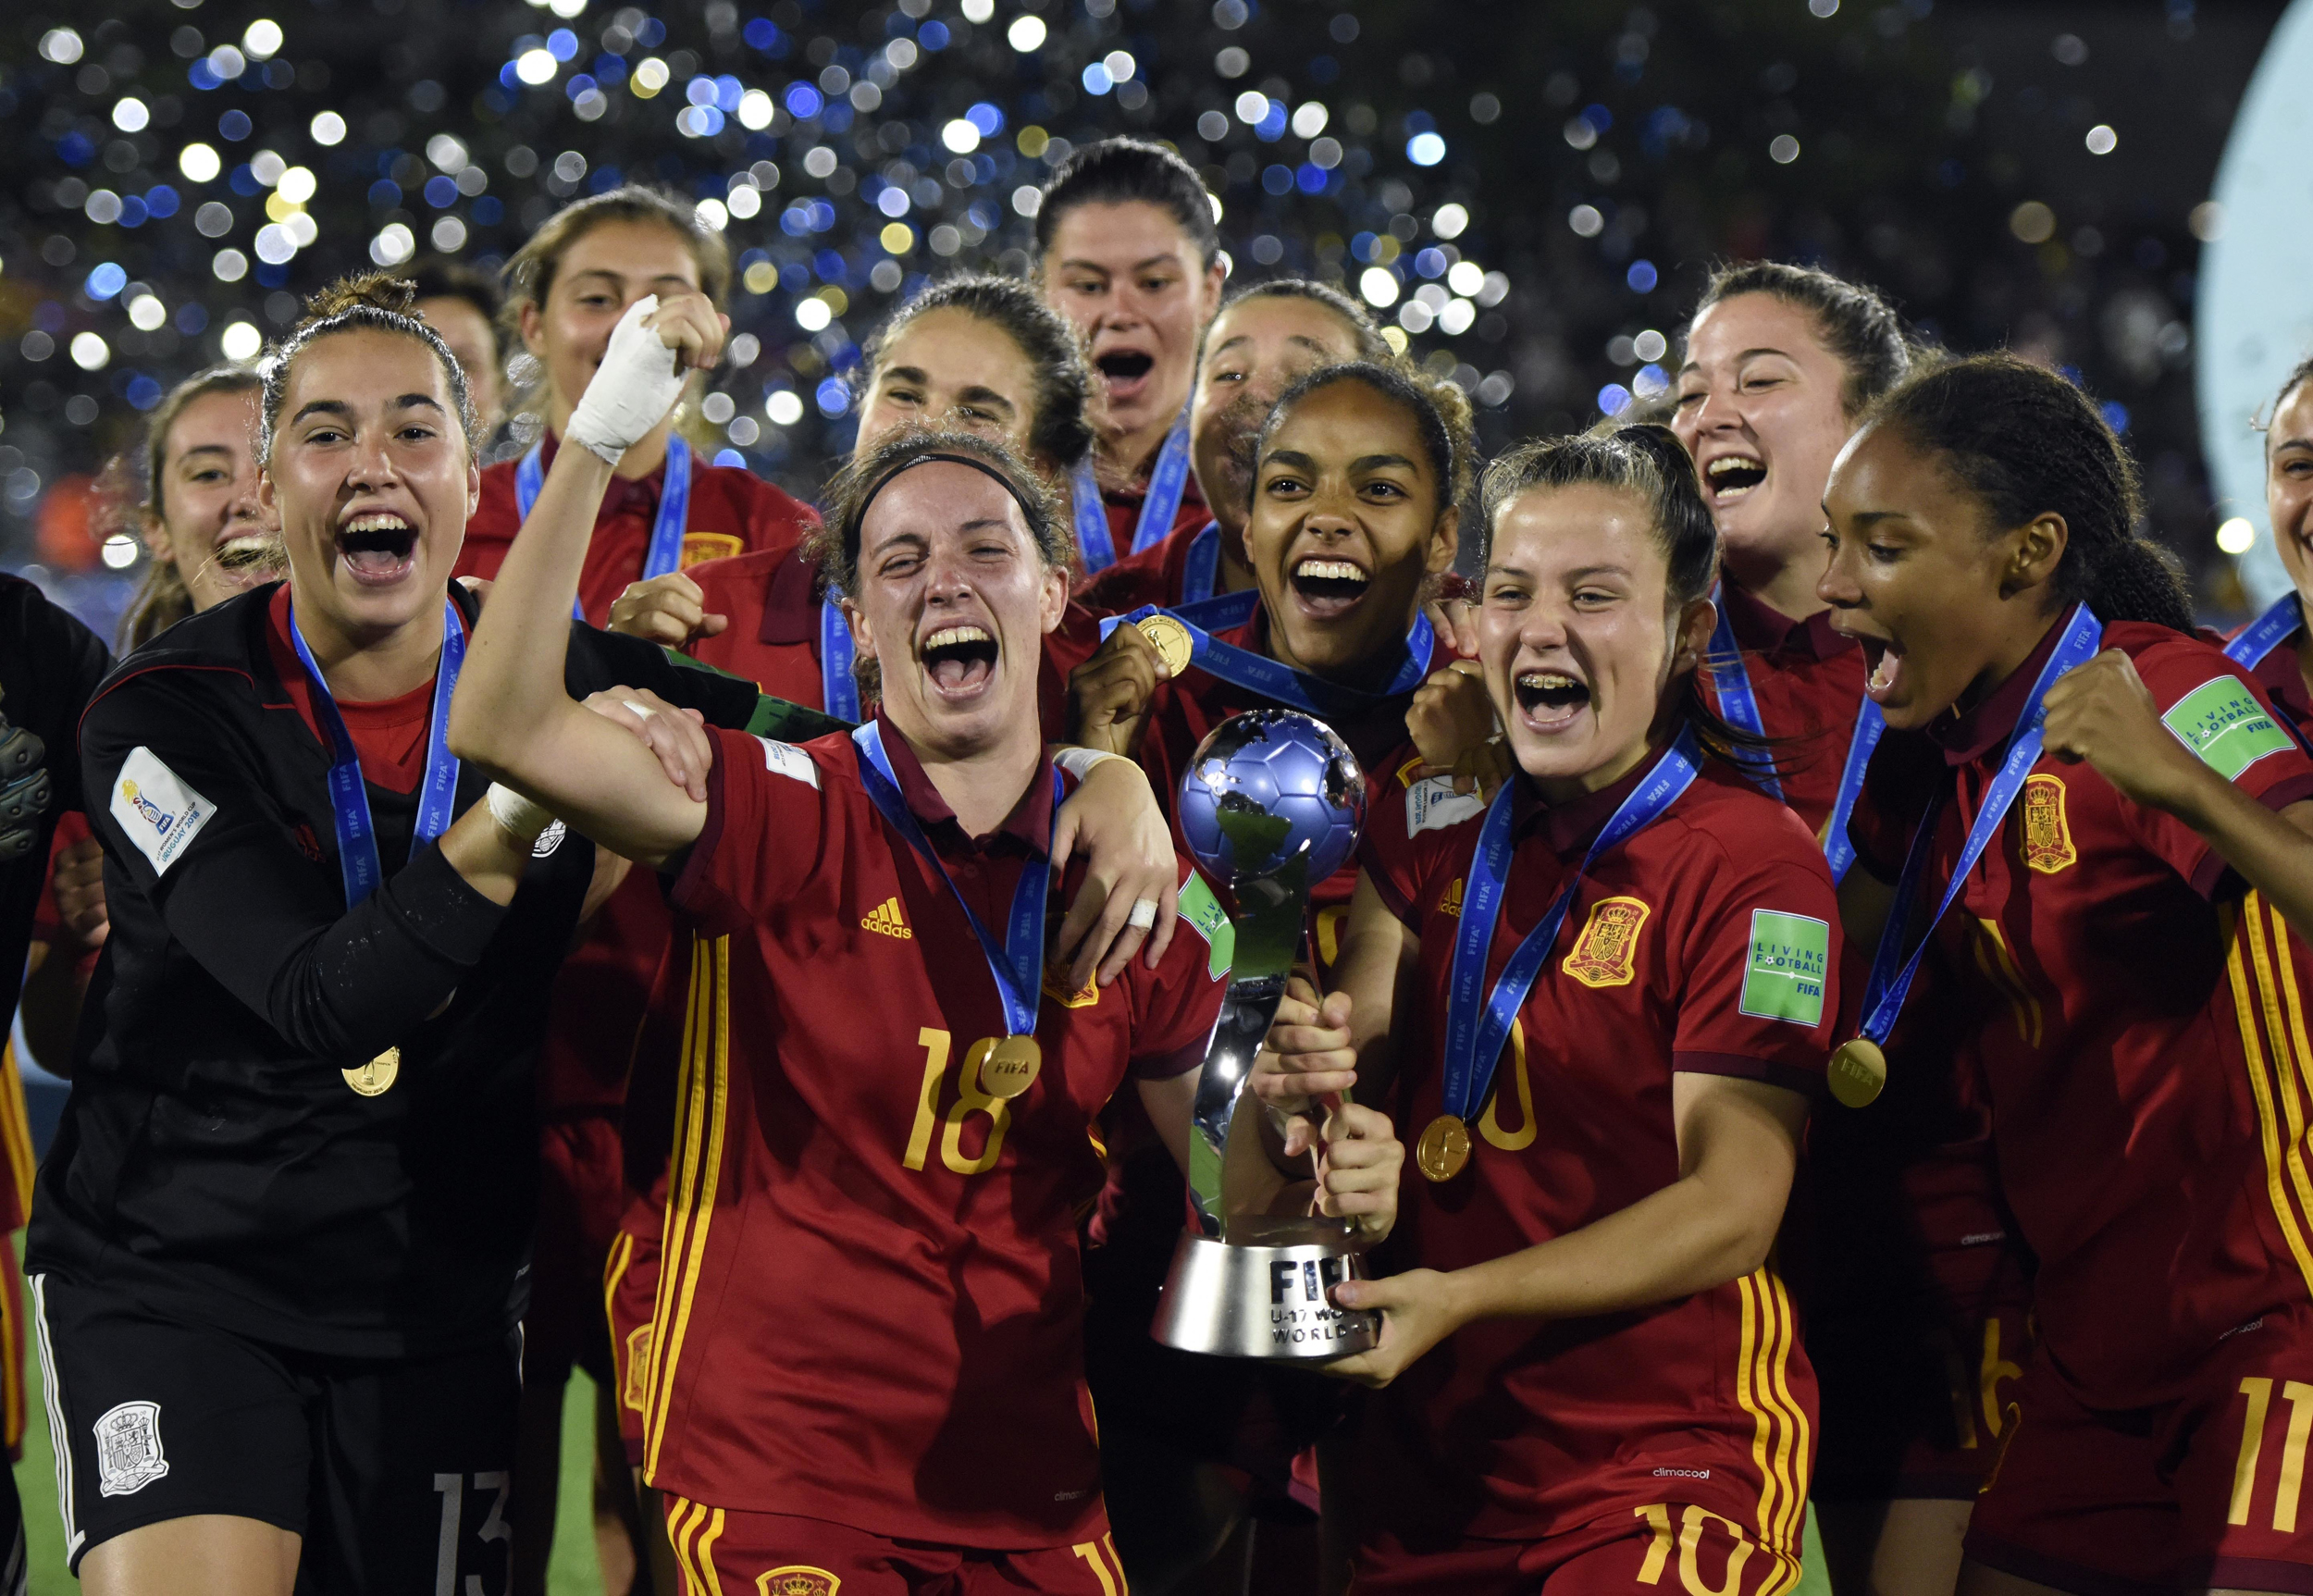 Groups-for-2019-Women's-World-Cup-confirmed